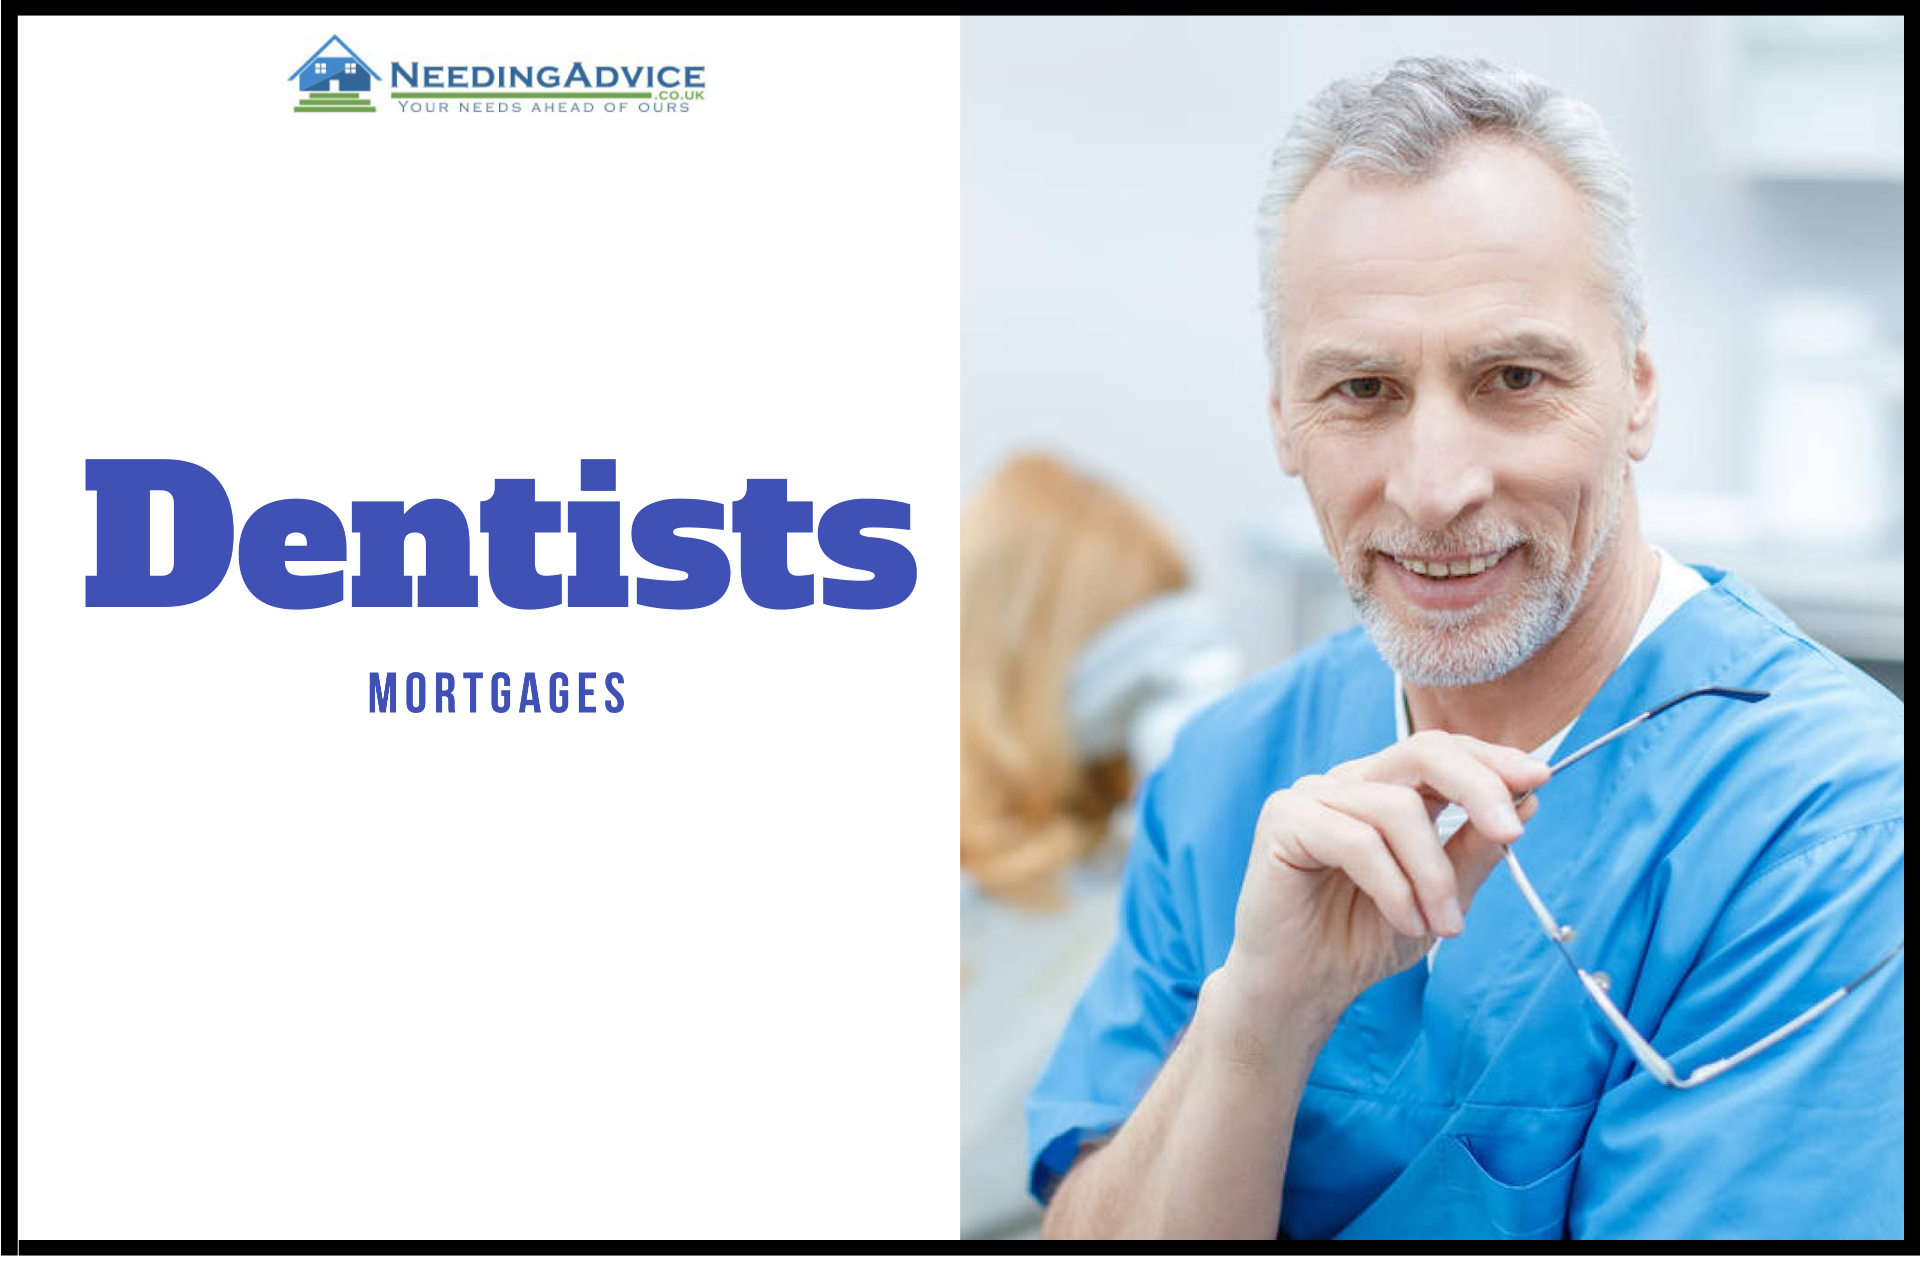 dentists mortgages